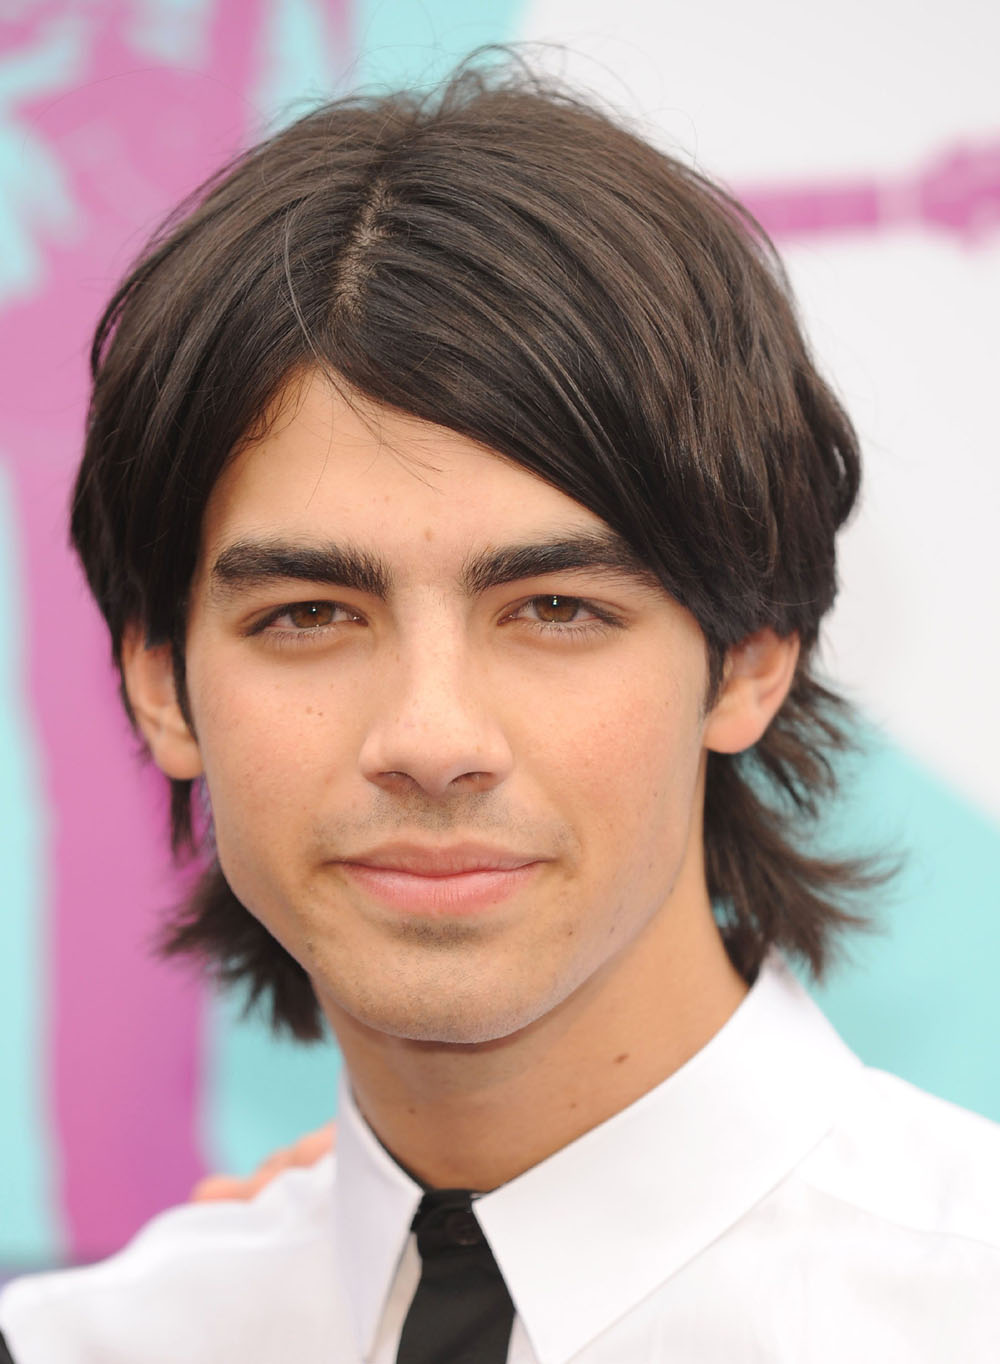 Joe Jonas dumps Taylor Swift by phone, starts dating older actress